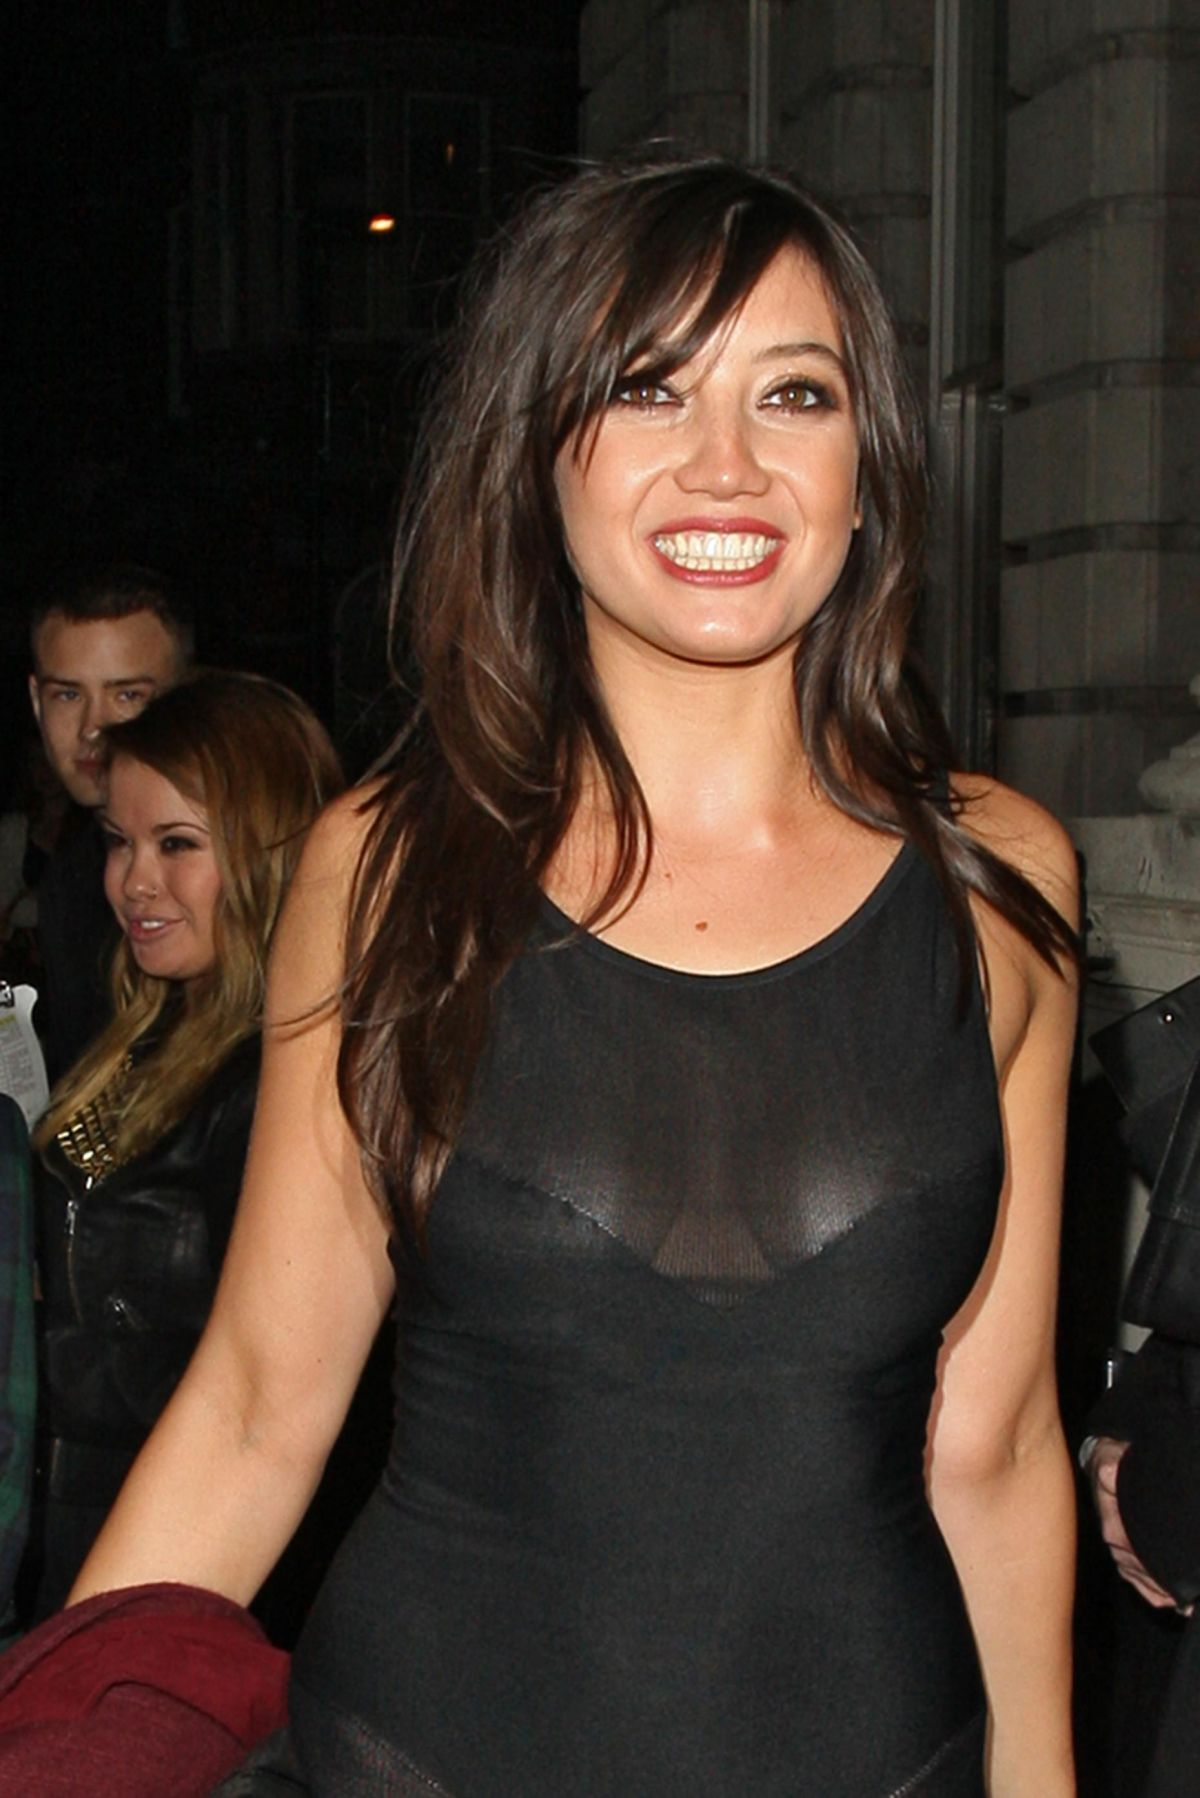 Daisy Lowe At W Magazine Dinner At Fashion Week In London